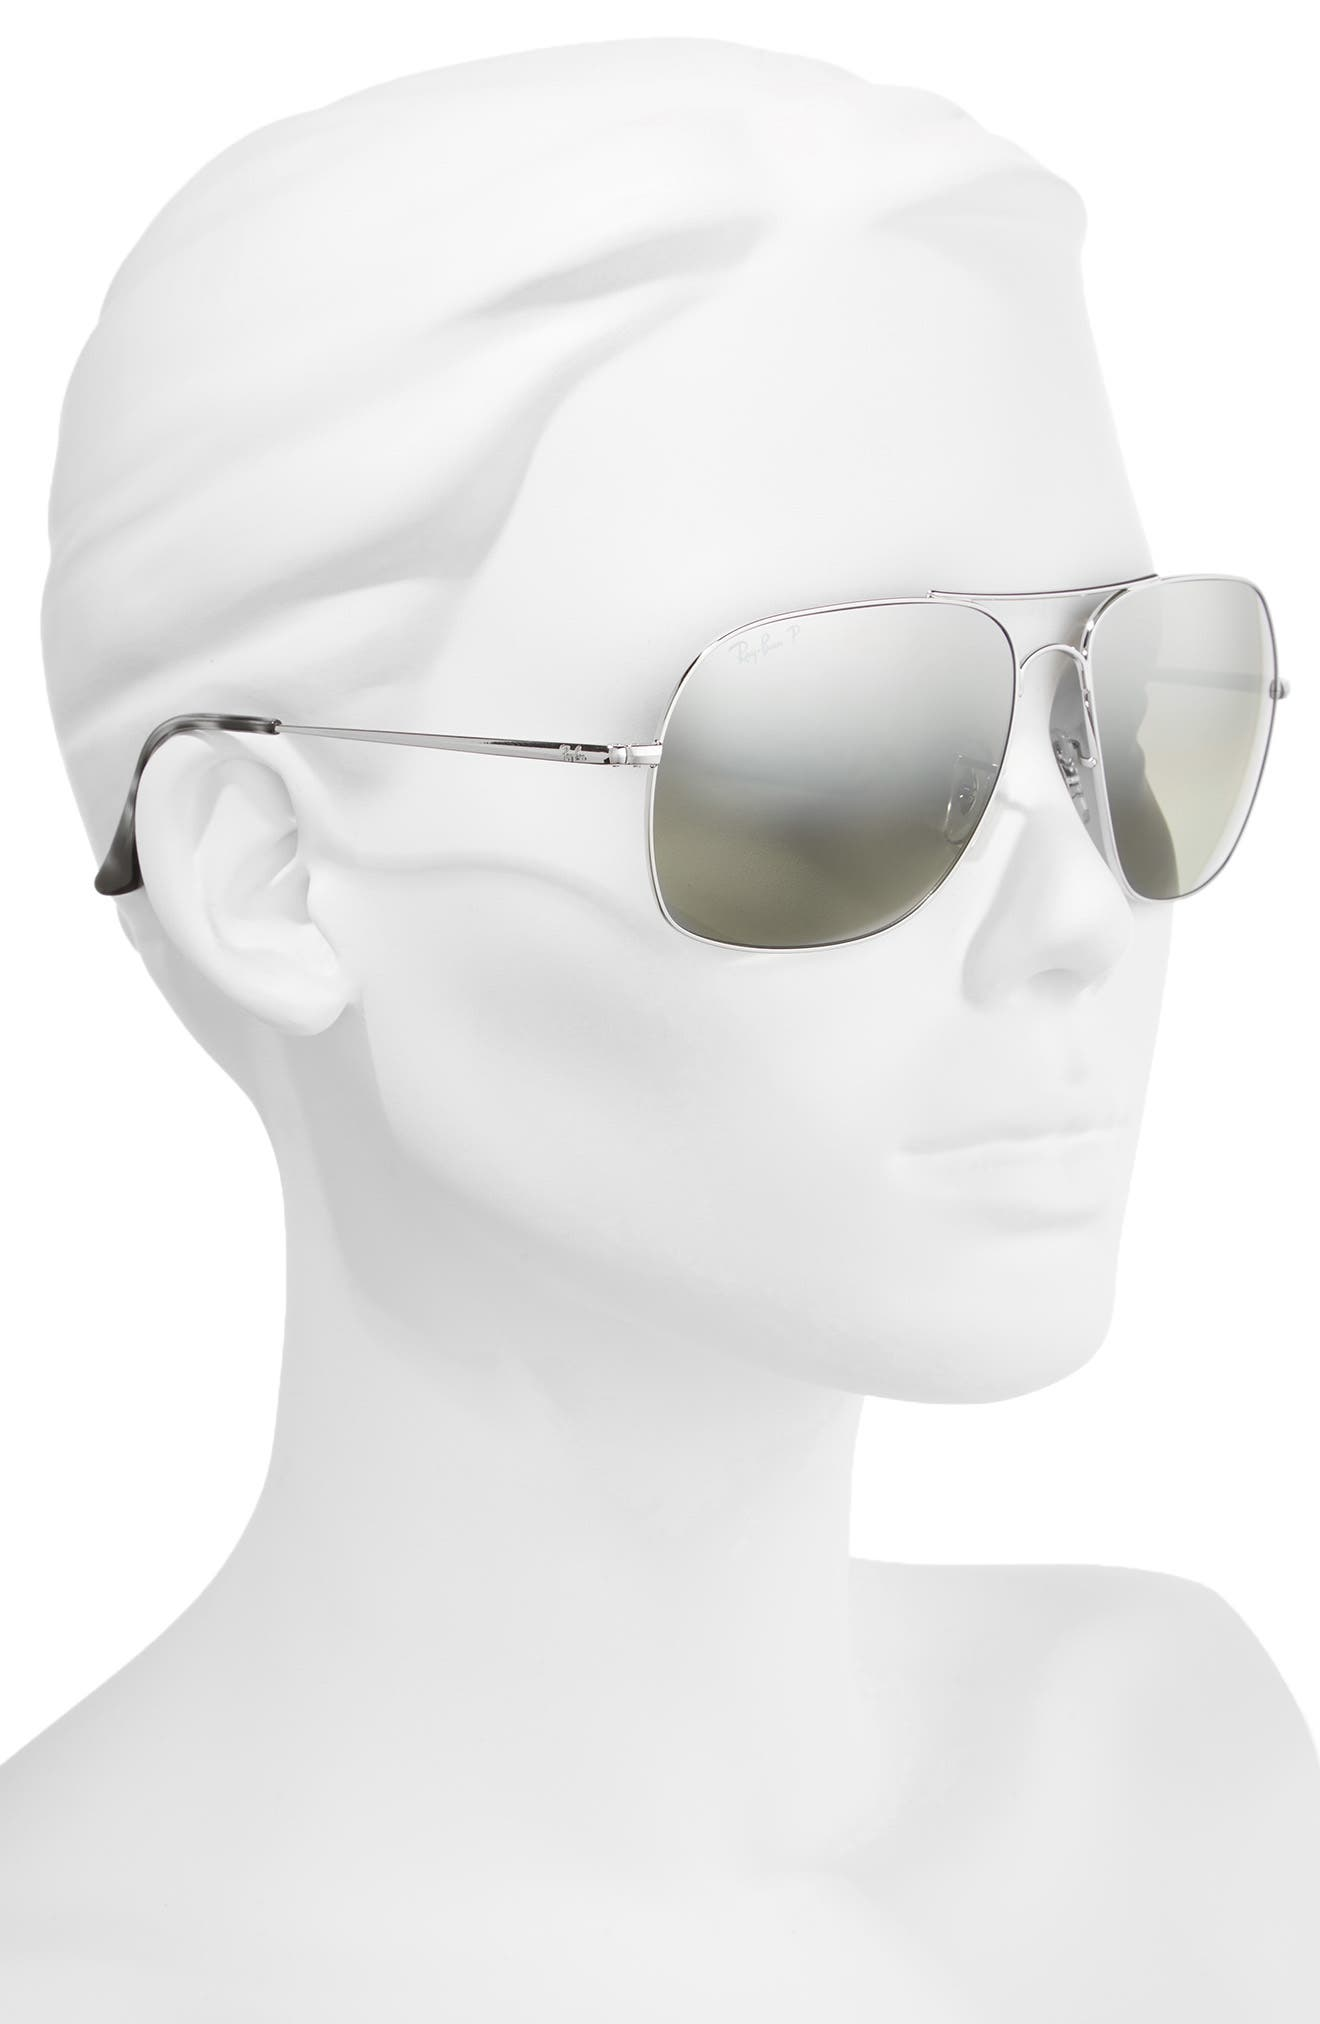 61mm Mirrored Lens Polarized Aviator Sunglasses,                             Alternate thumbnail 2, color,                             Silver